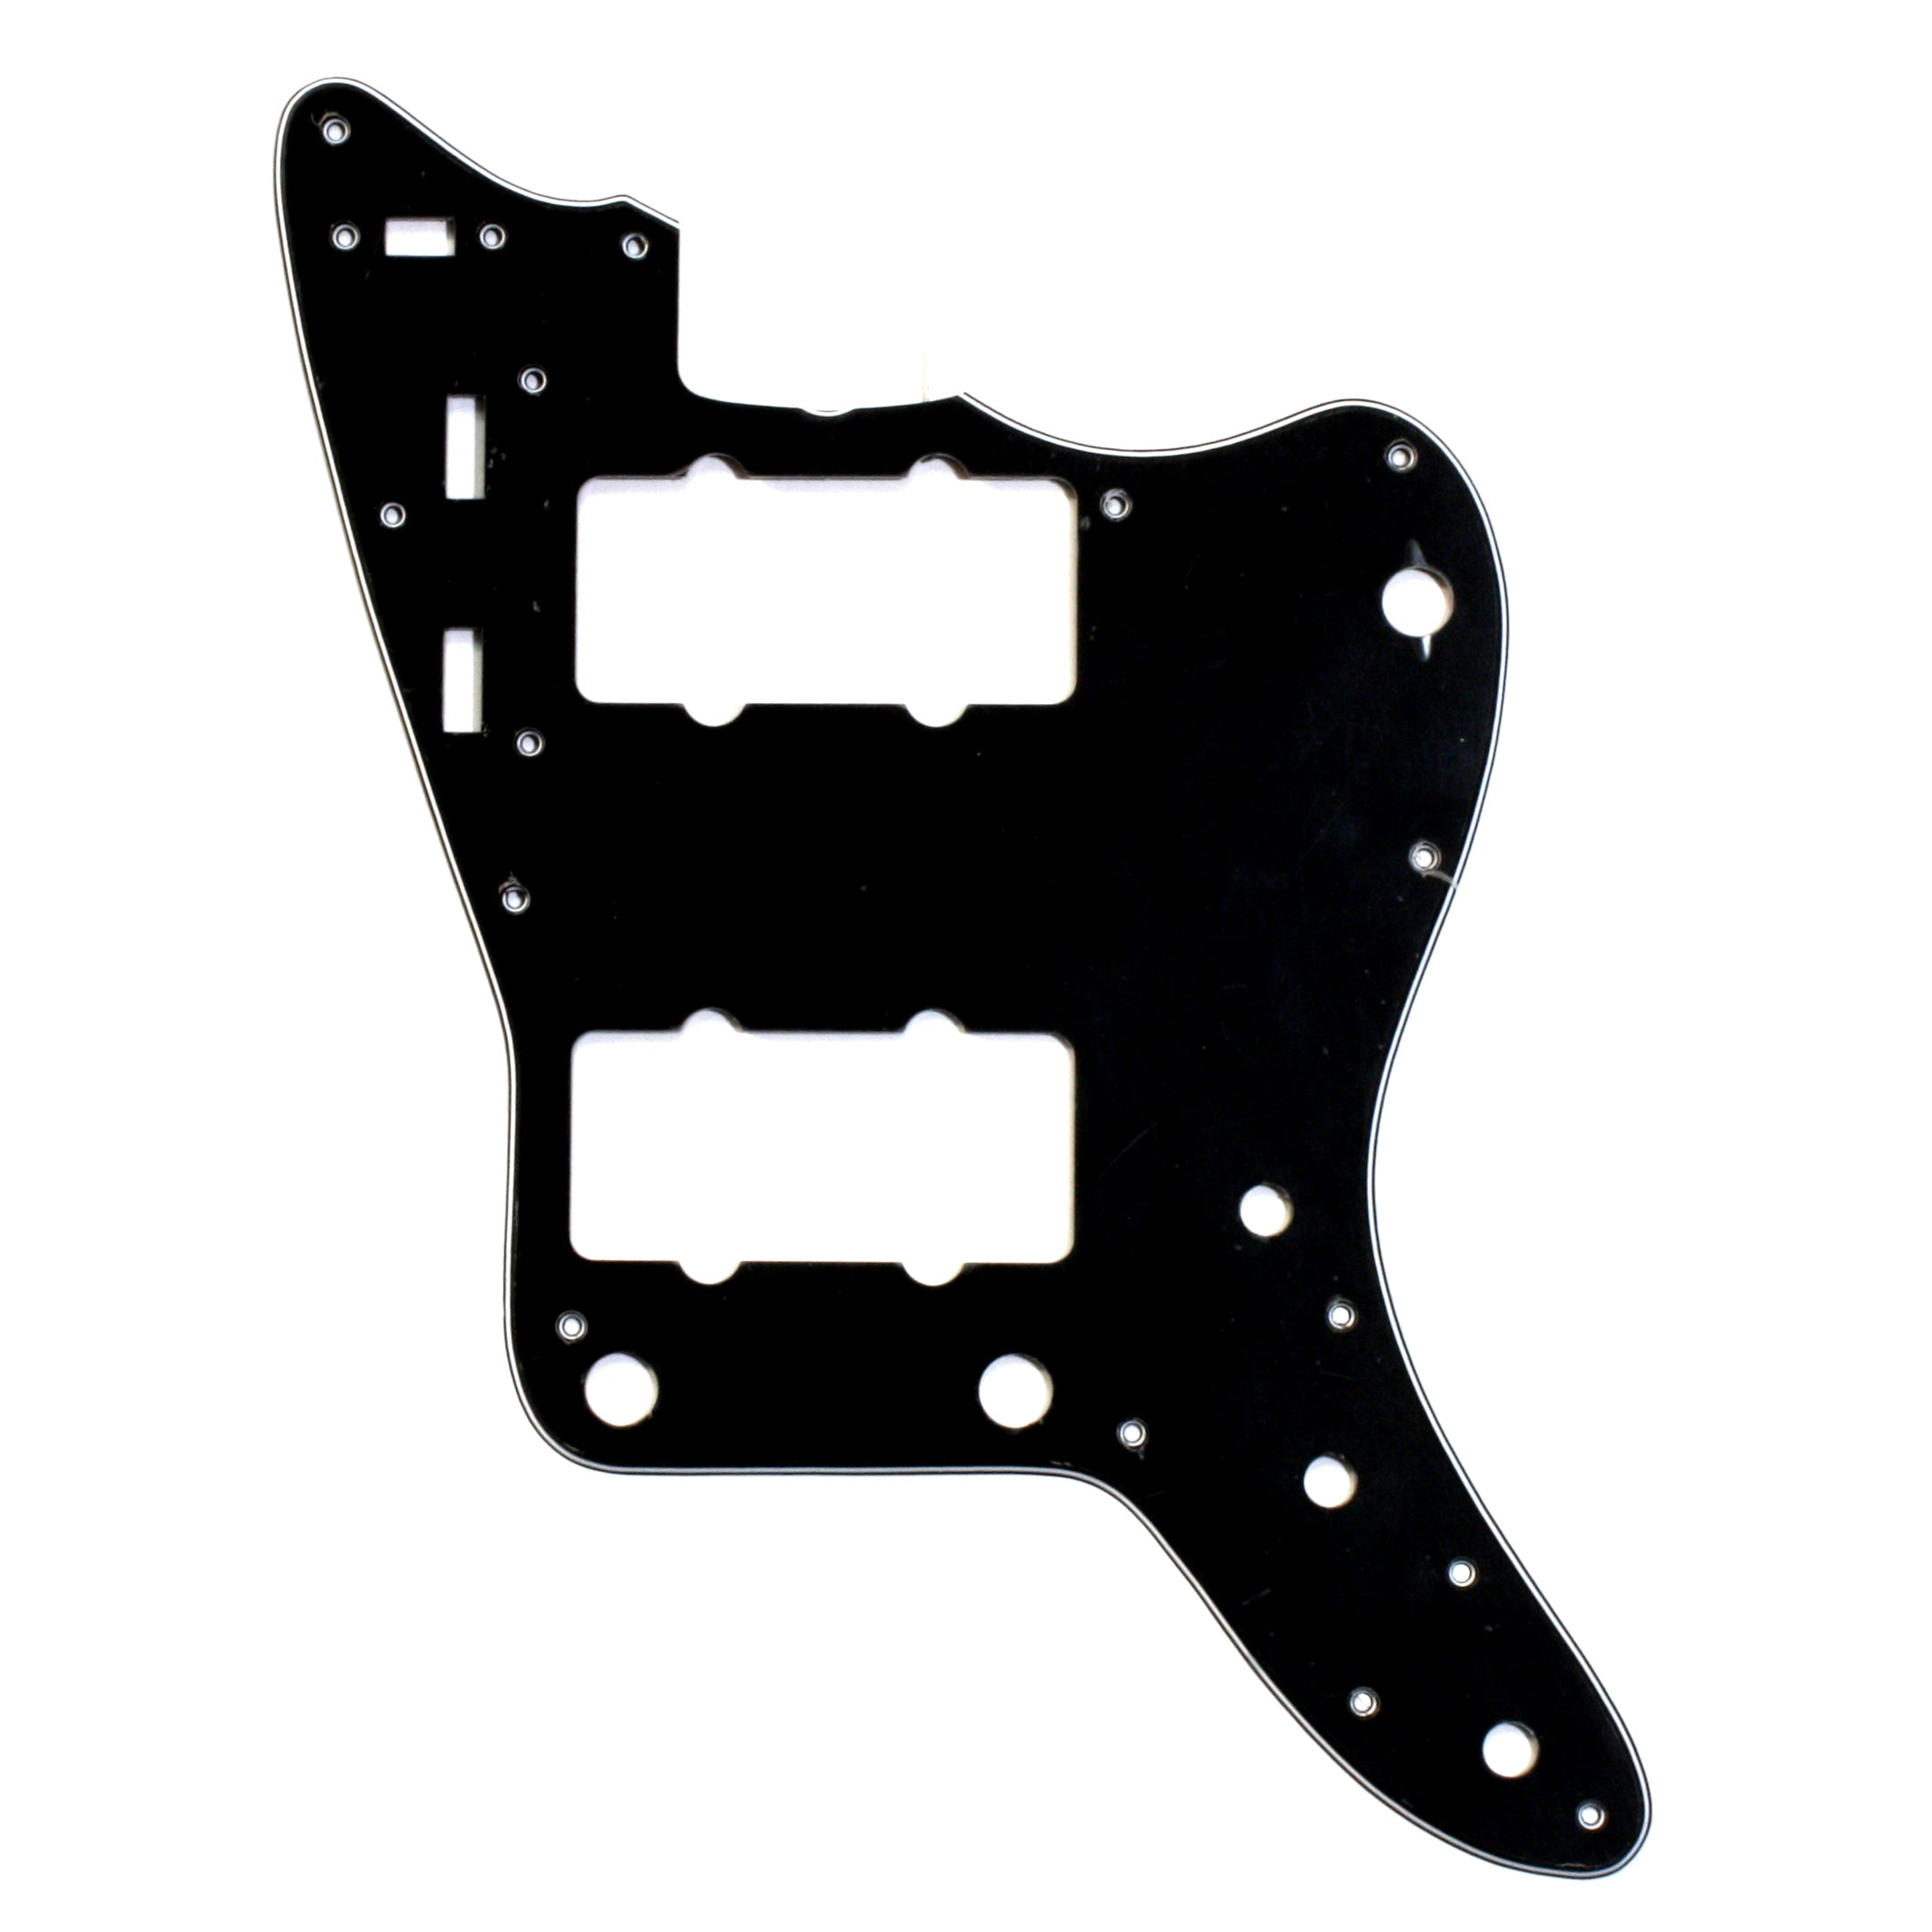 PG-0582 13-hole Pickguard for US Jazzmaster®